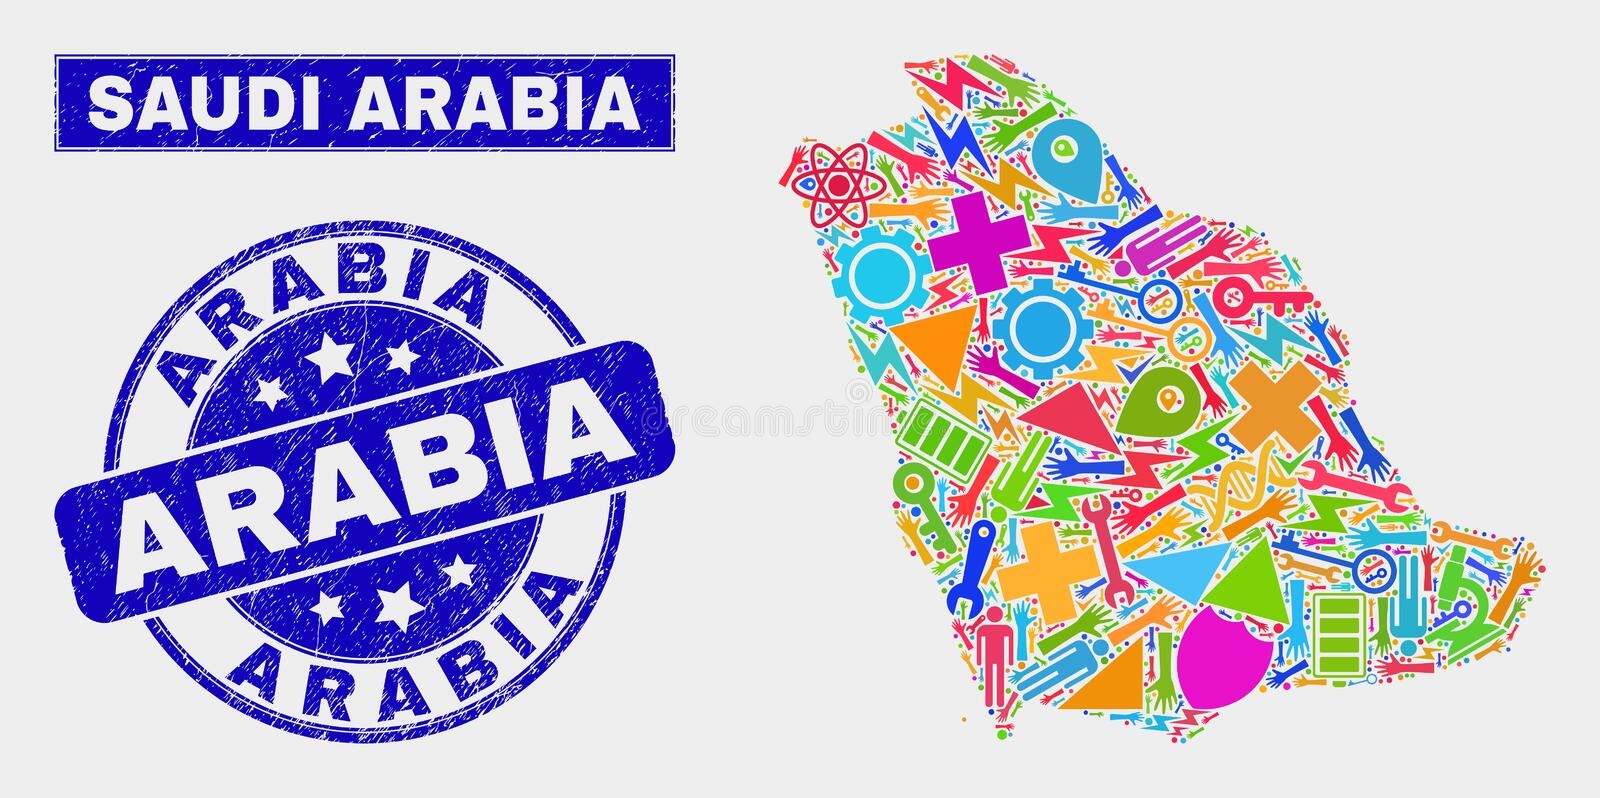 Saudi Arabia Map Stock Illustrations – 3,359 Saudi Arabia